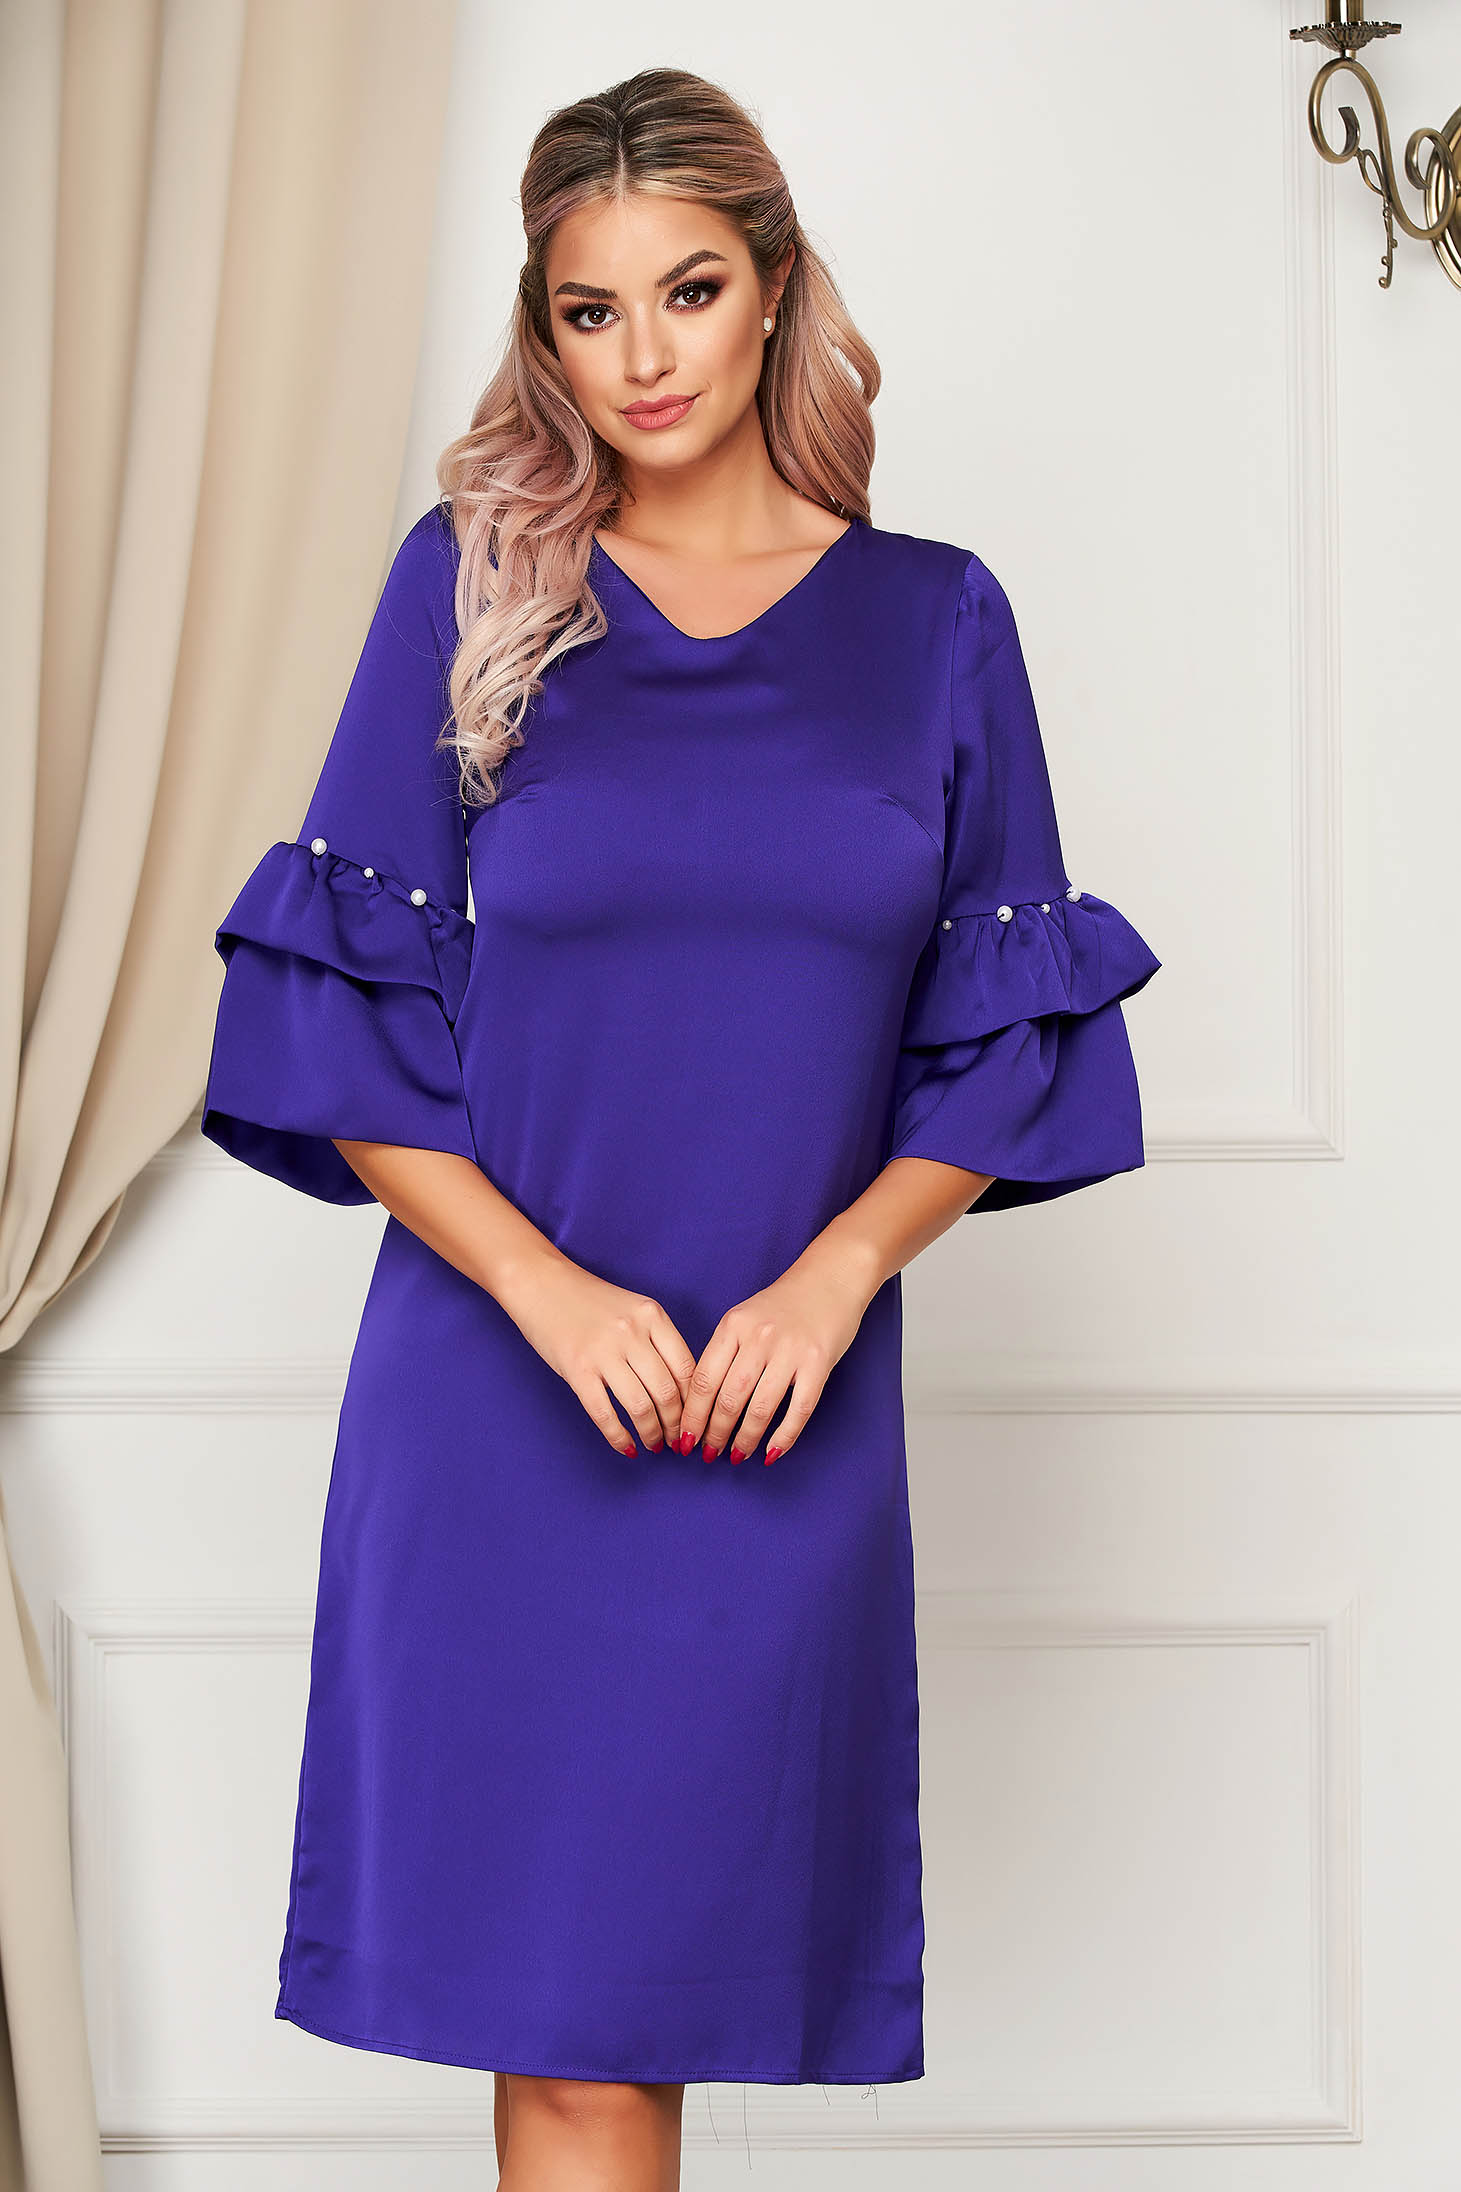 Purple dress elegant a-line with bell sleeve with pearls